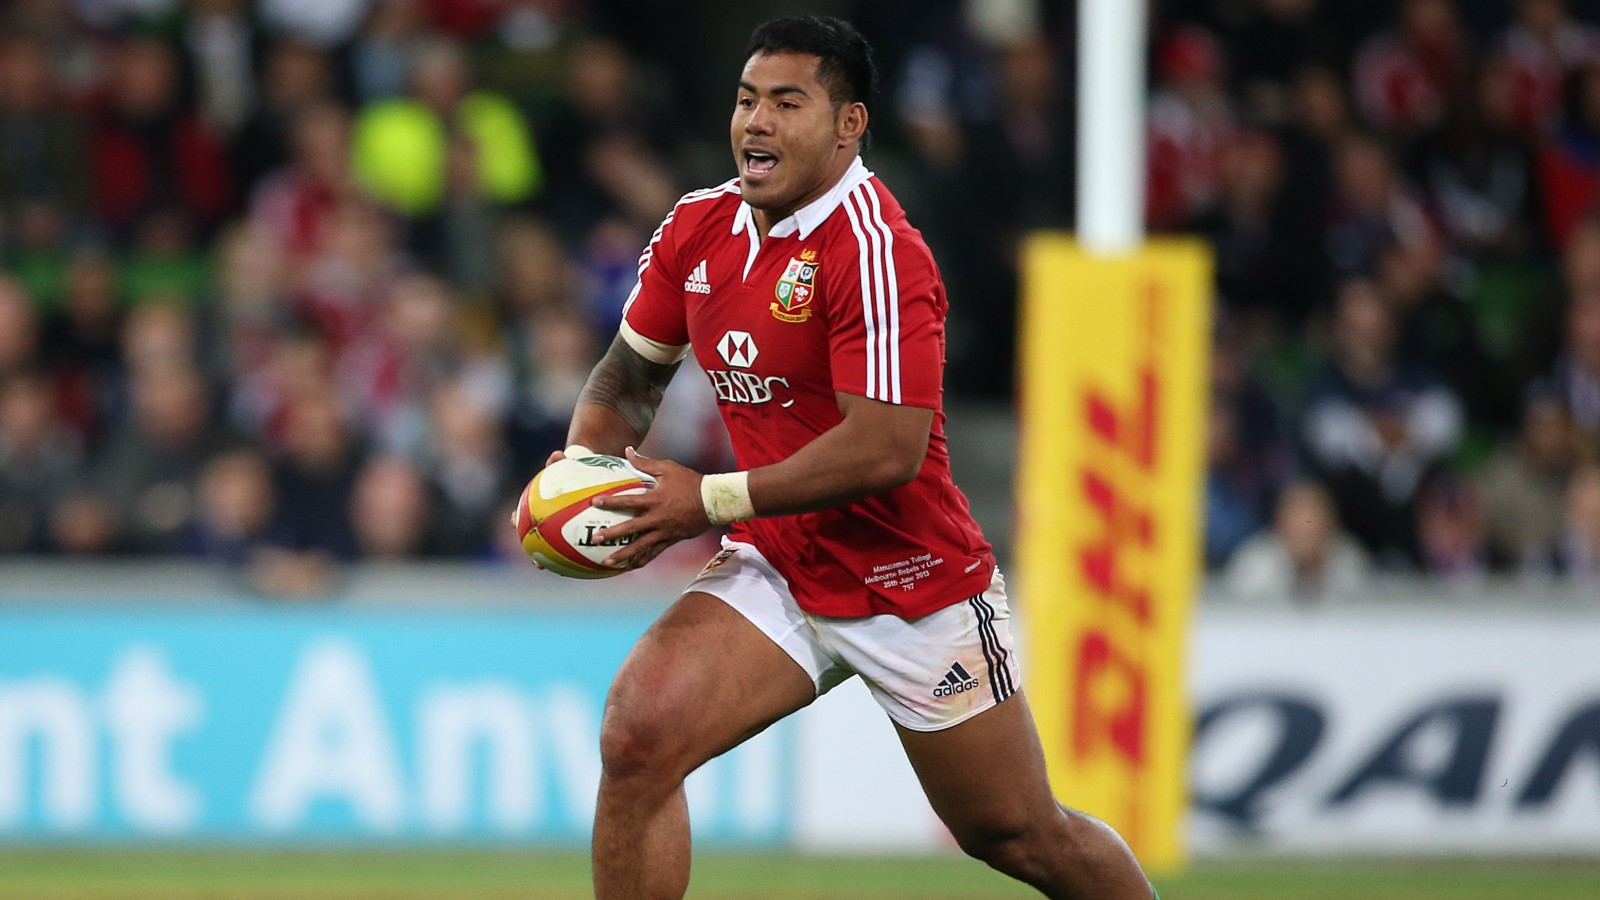 Tuilagi's back for England's clash with Ireland